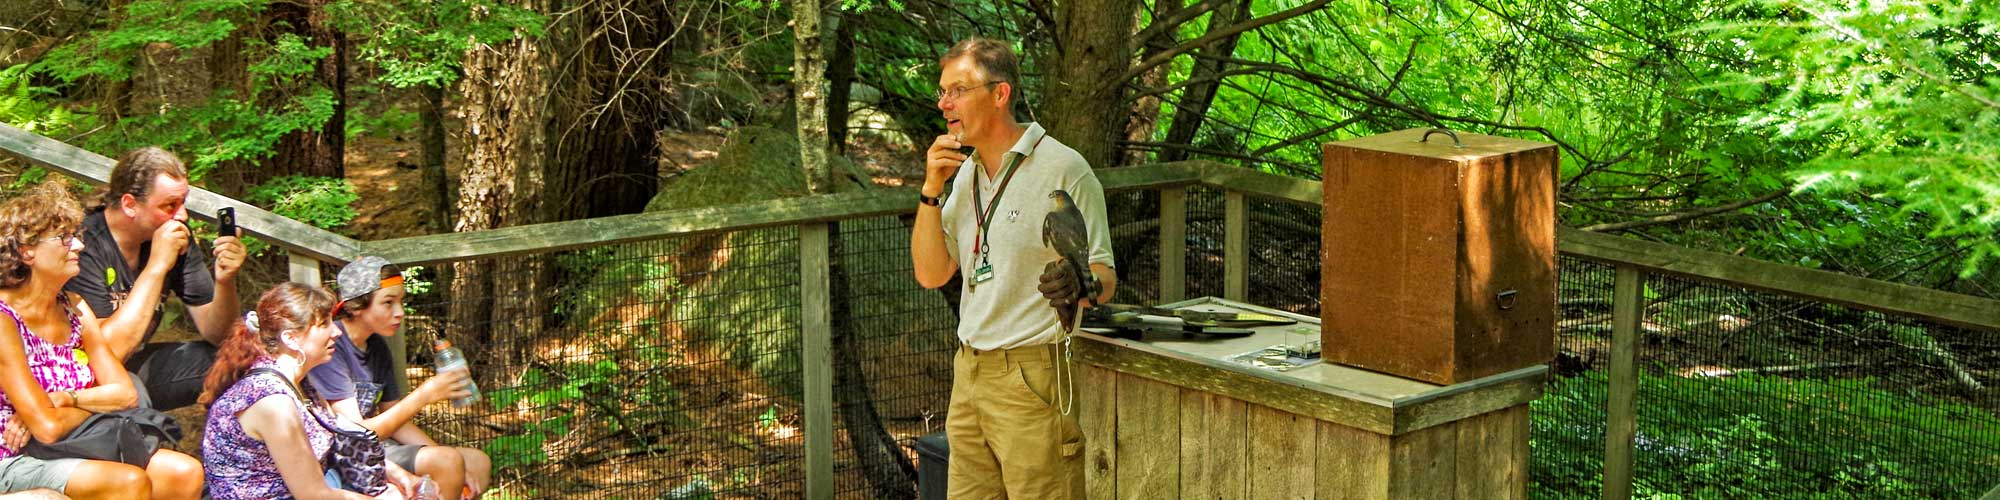 Naturalist presenting live animal program with Sharp-shinned Hawk to visitors.